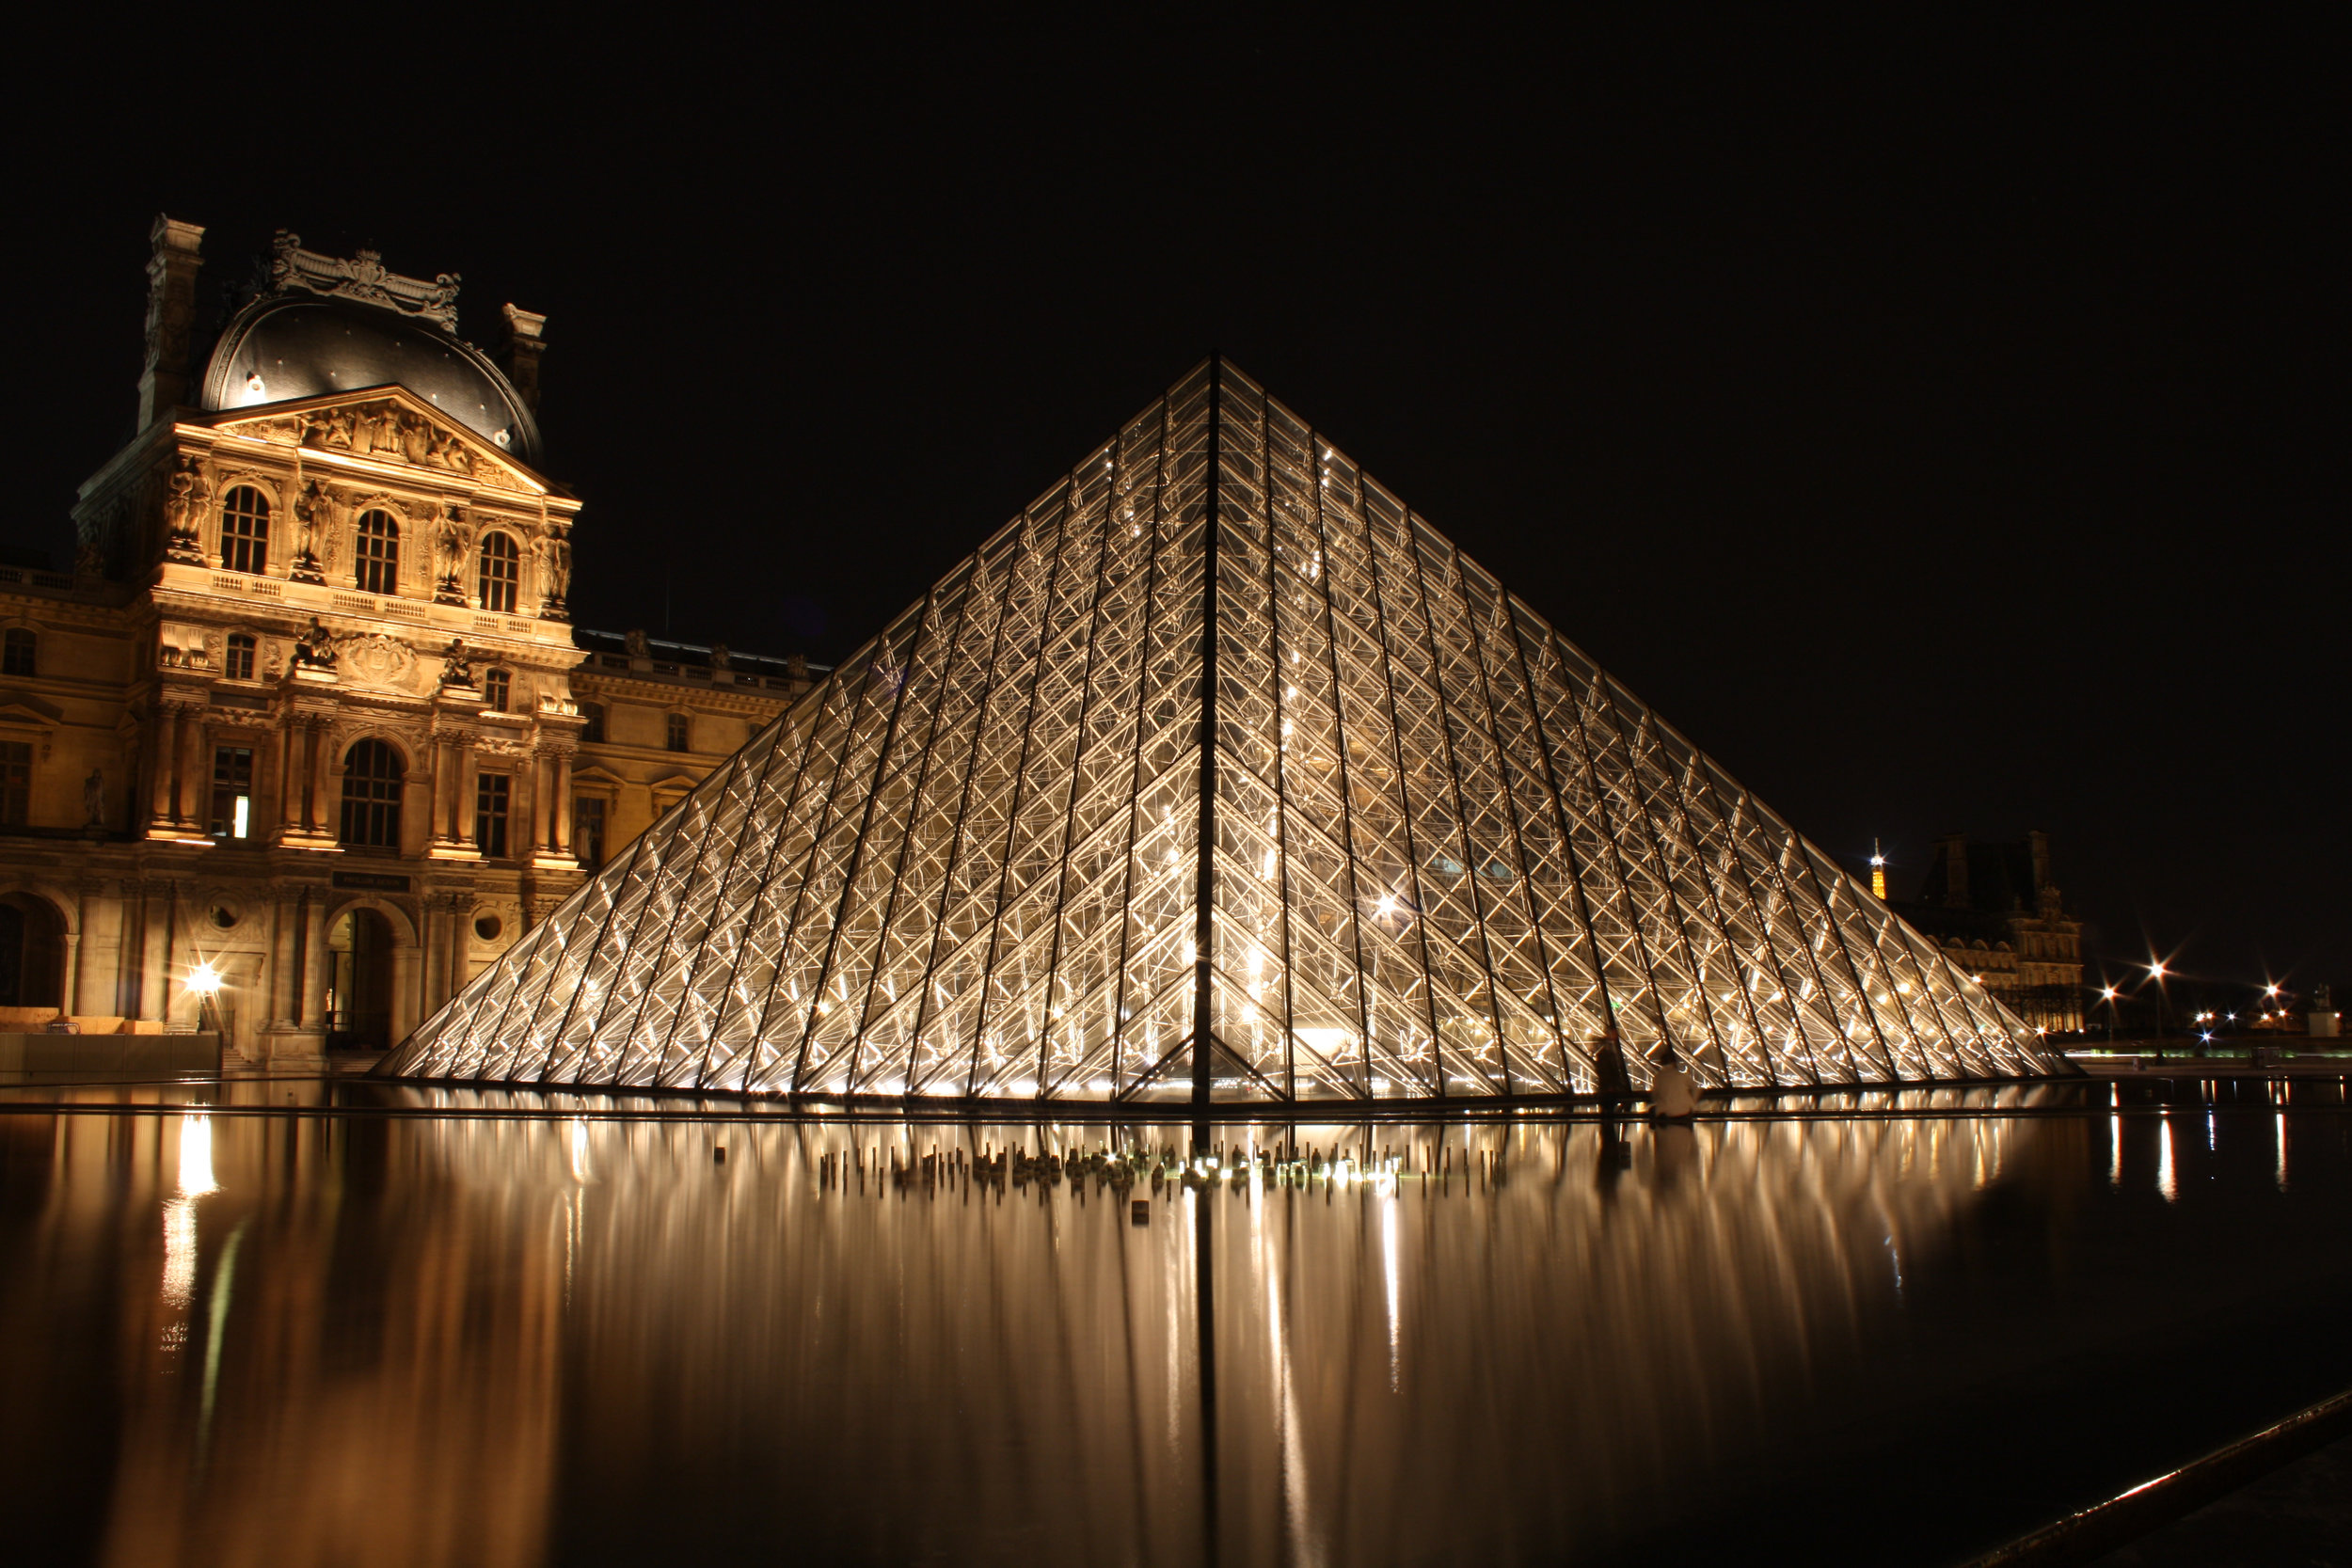 Louvre at Night @rebeccaplotnick